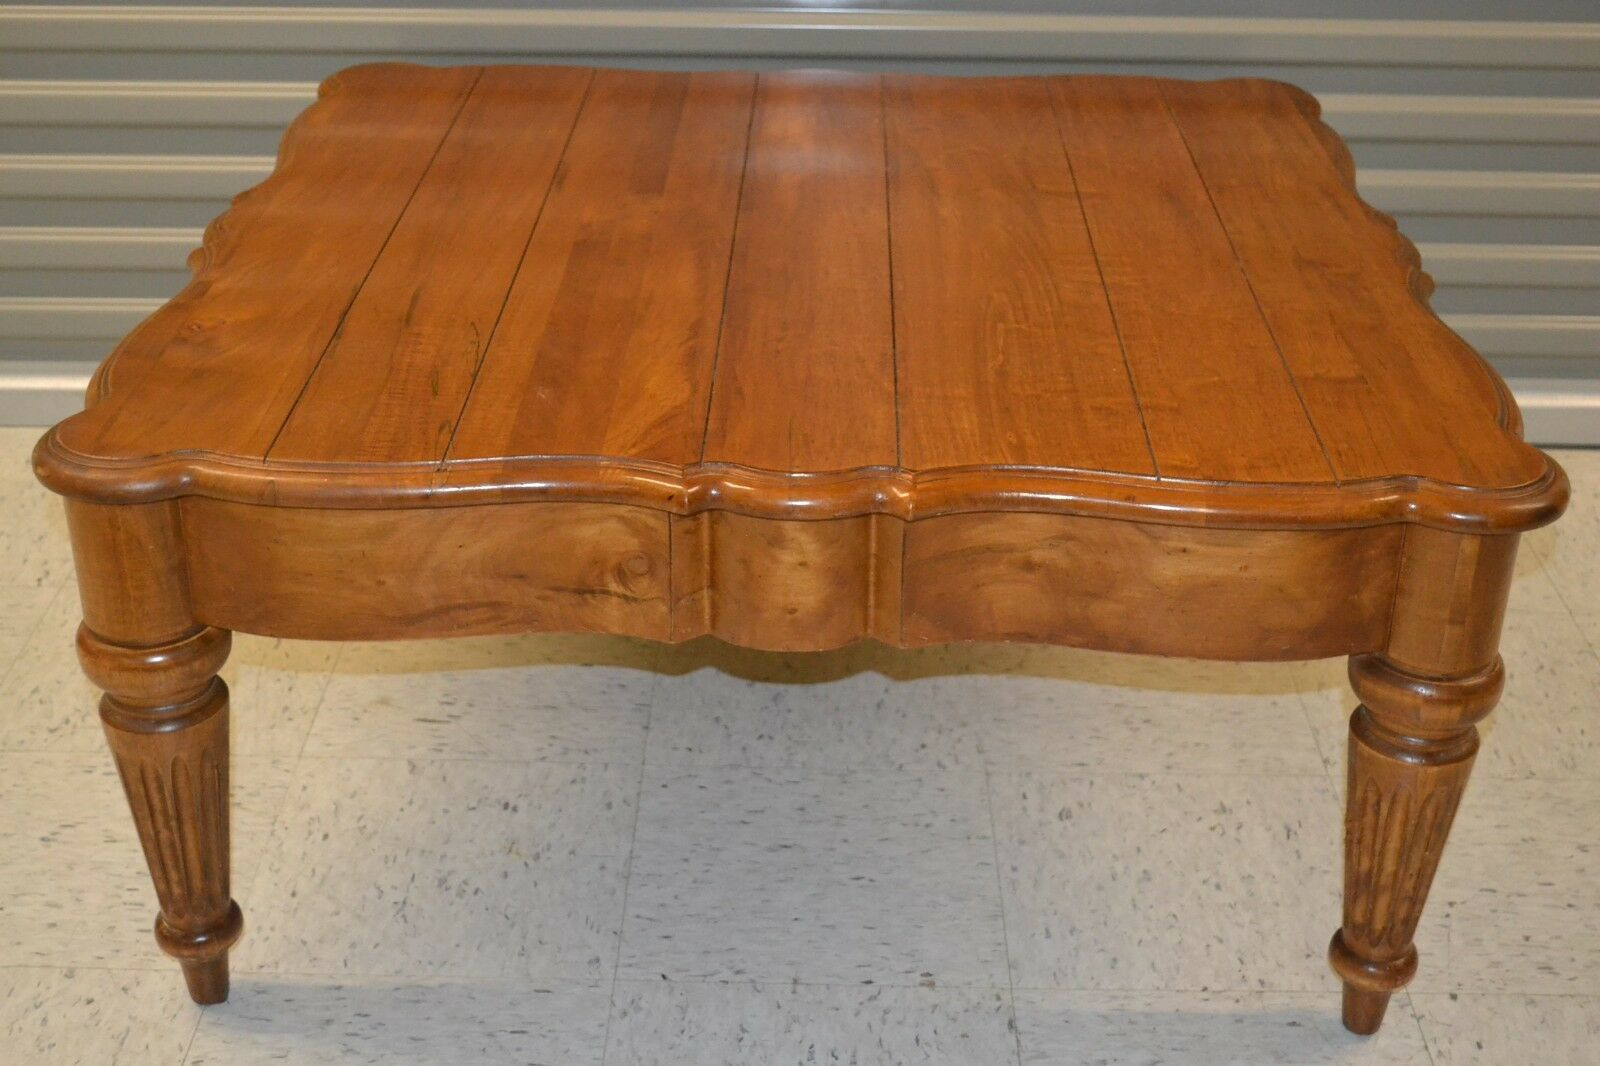 Ethan Allen Legacy Coffee Table Maple 13 8400 213 Russet